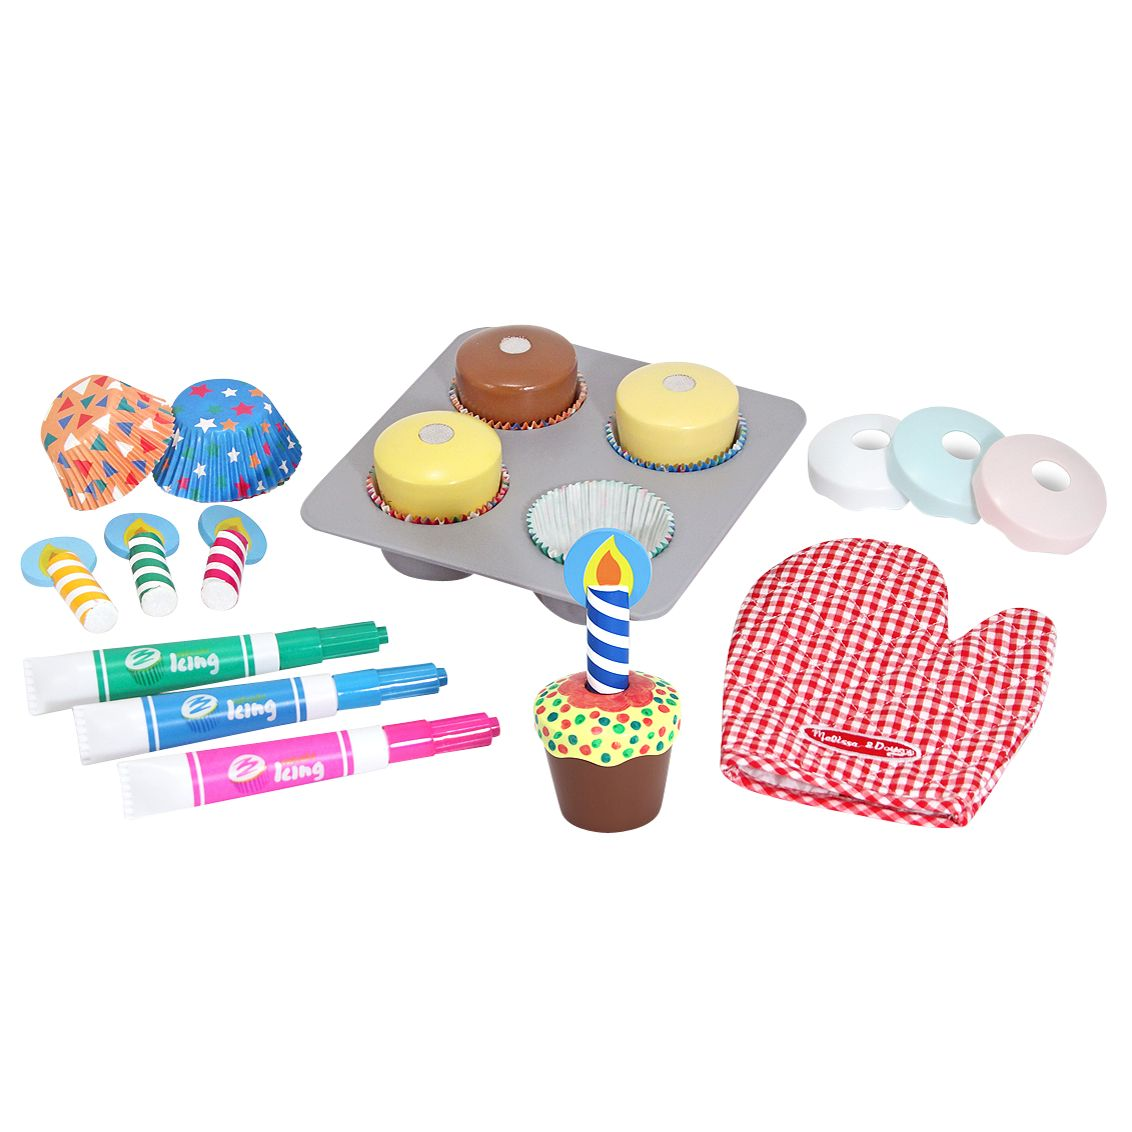 Melissa and Doug Bake and Decorate Wooden Cupcake Set